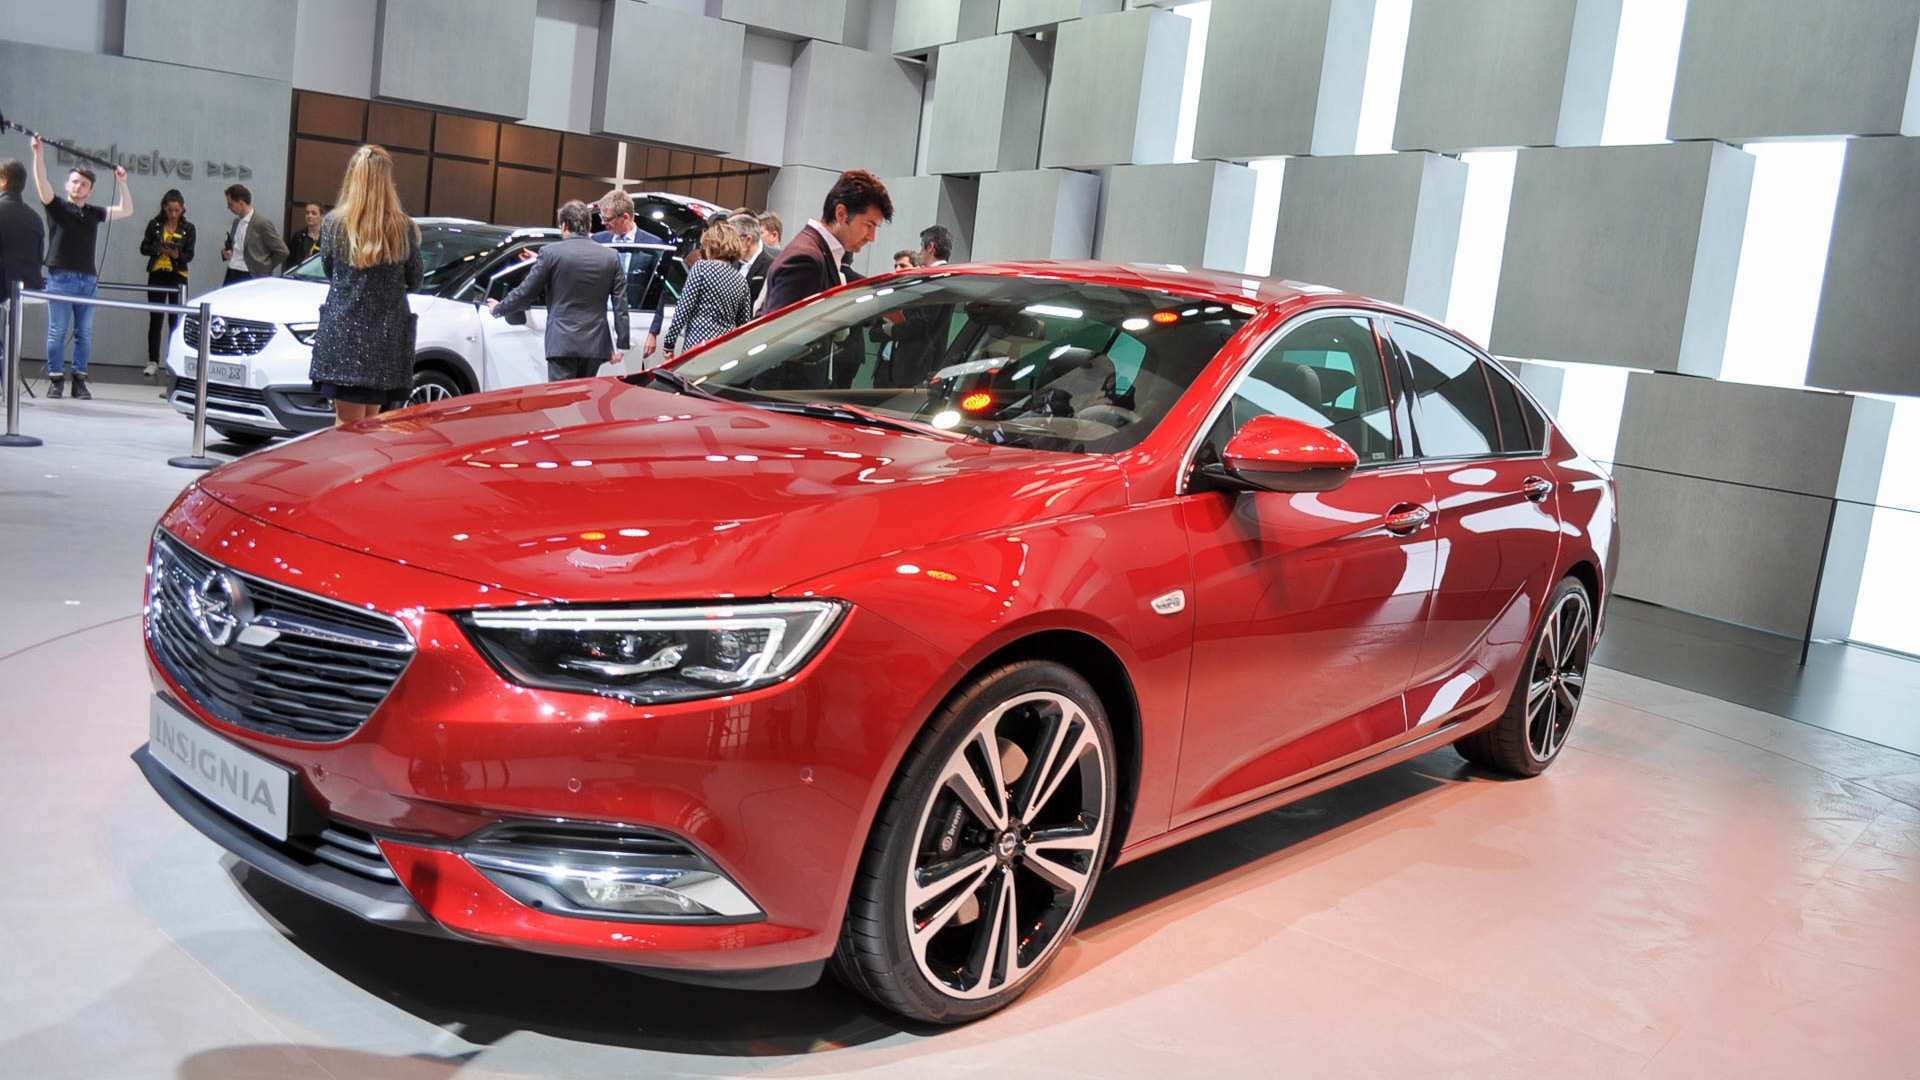 86 Concept of Opel Insignia Opc 2020 Research New for Opel Insignia Opc 2020